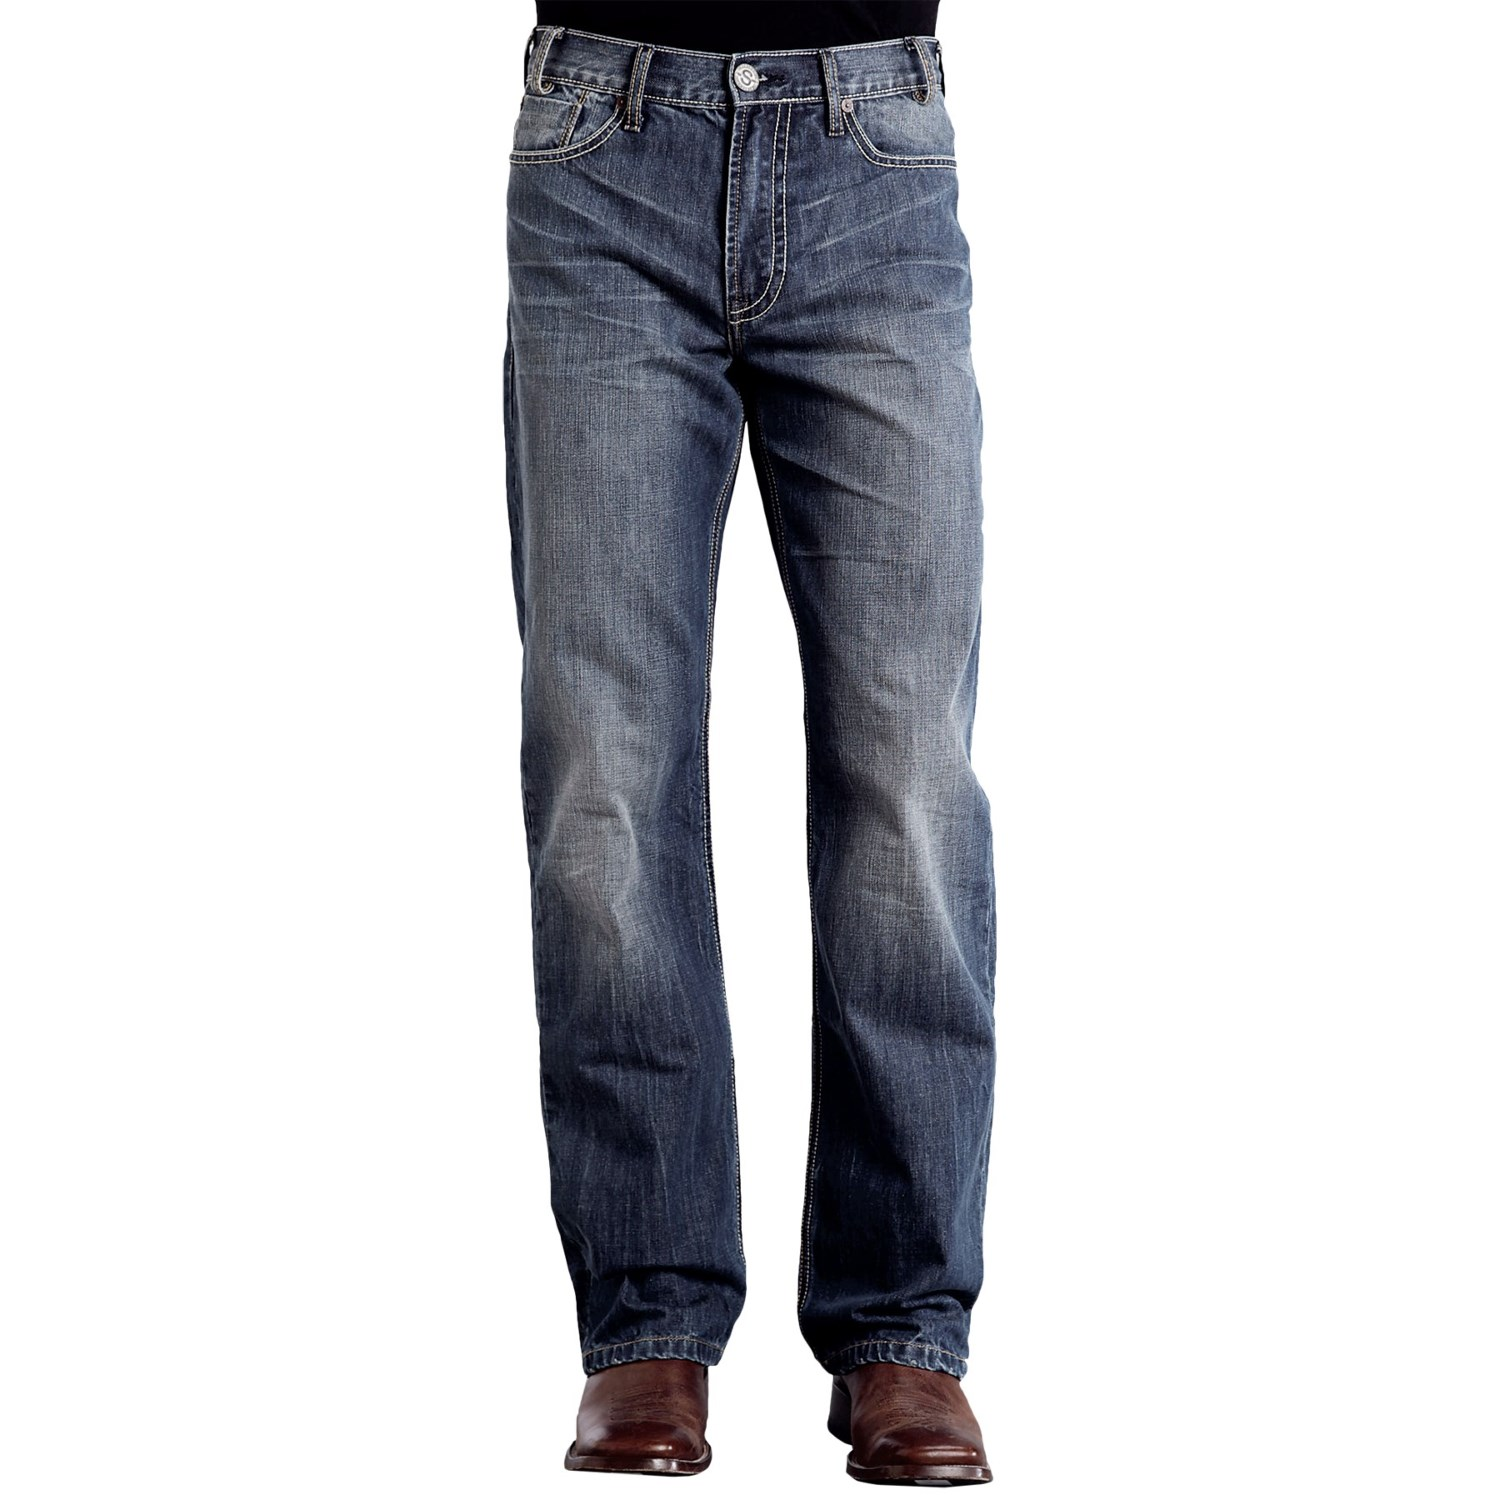 stetson relaxed fit jeans for men save 72